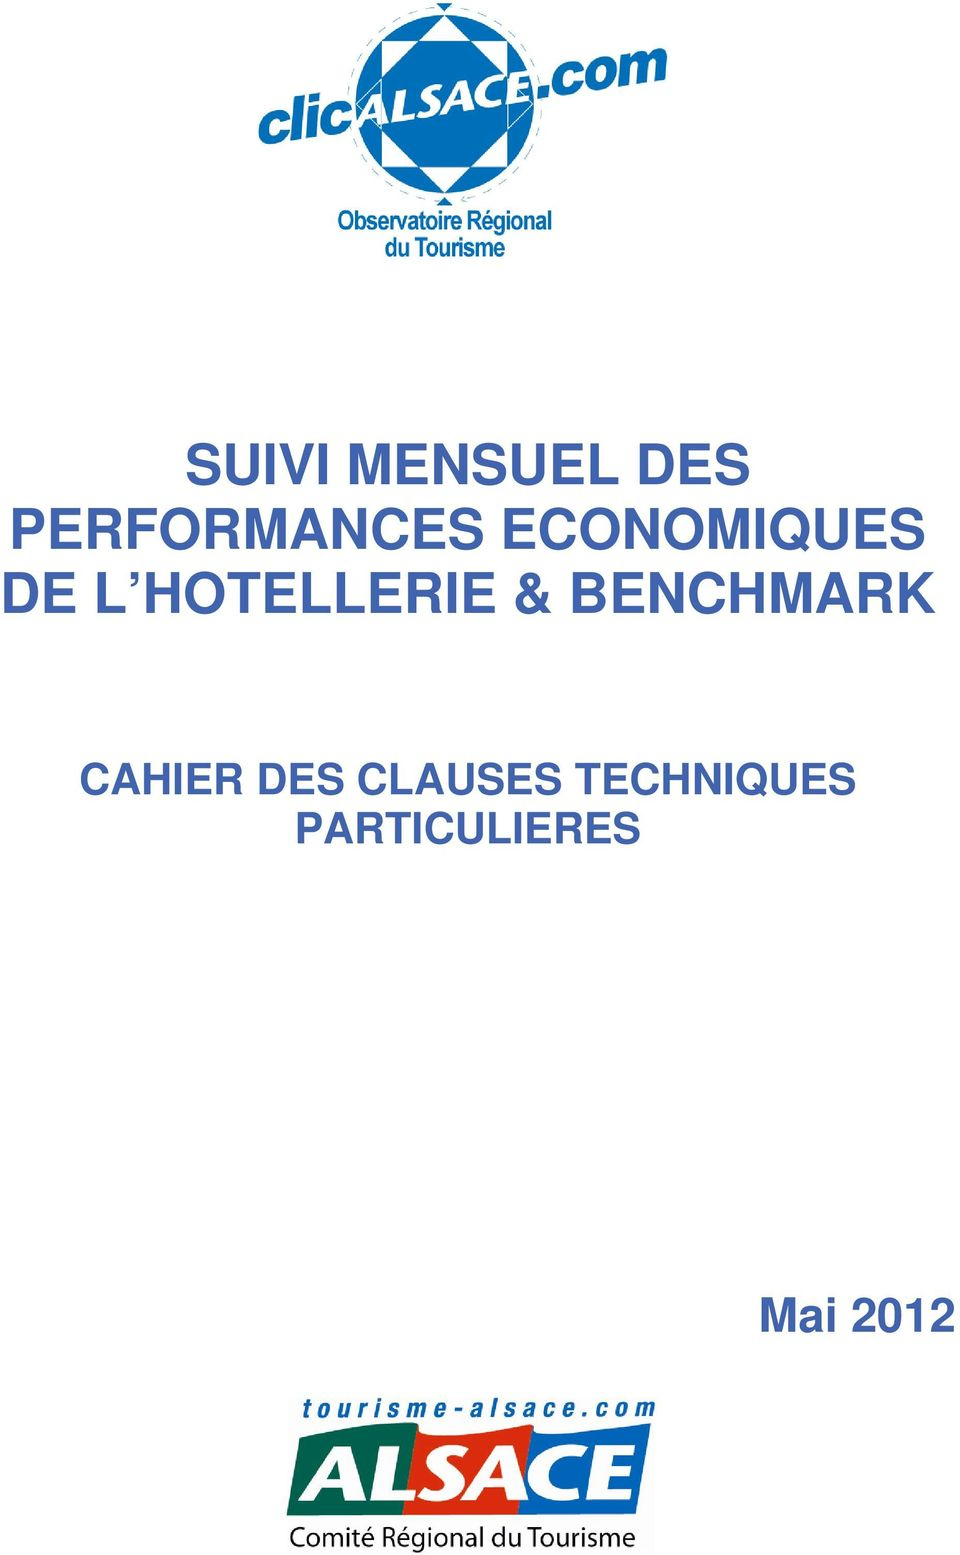 BENCHMARK CAHIER DES CLAUSES